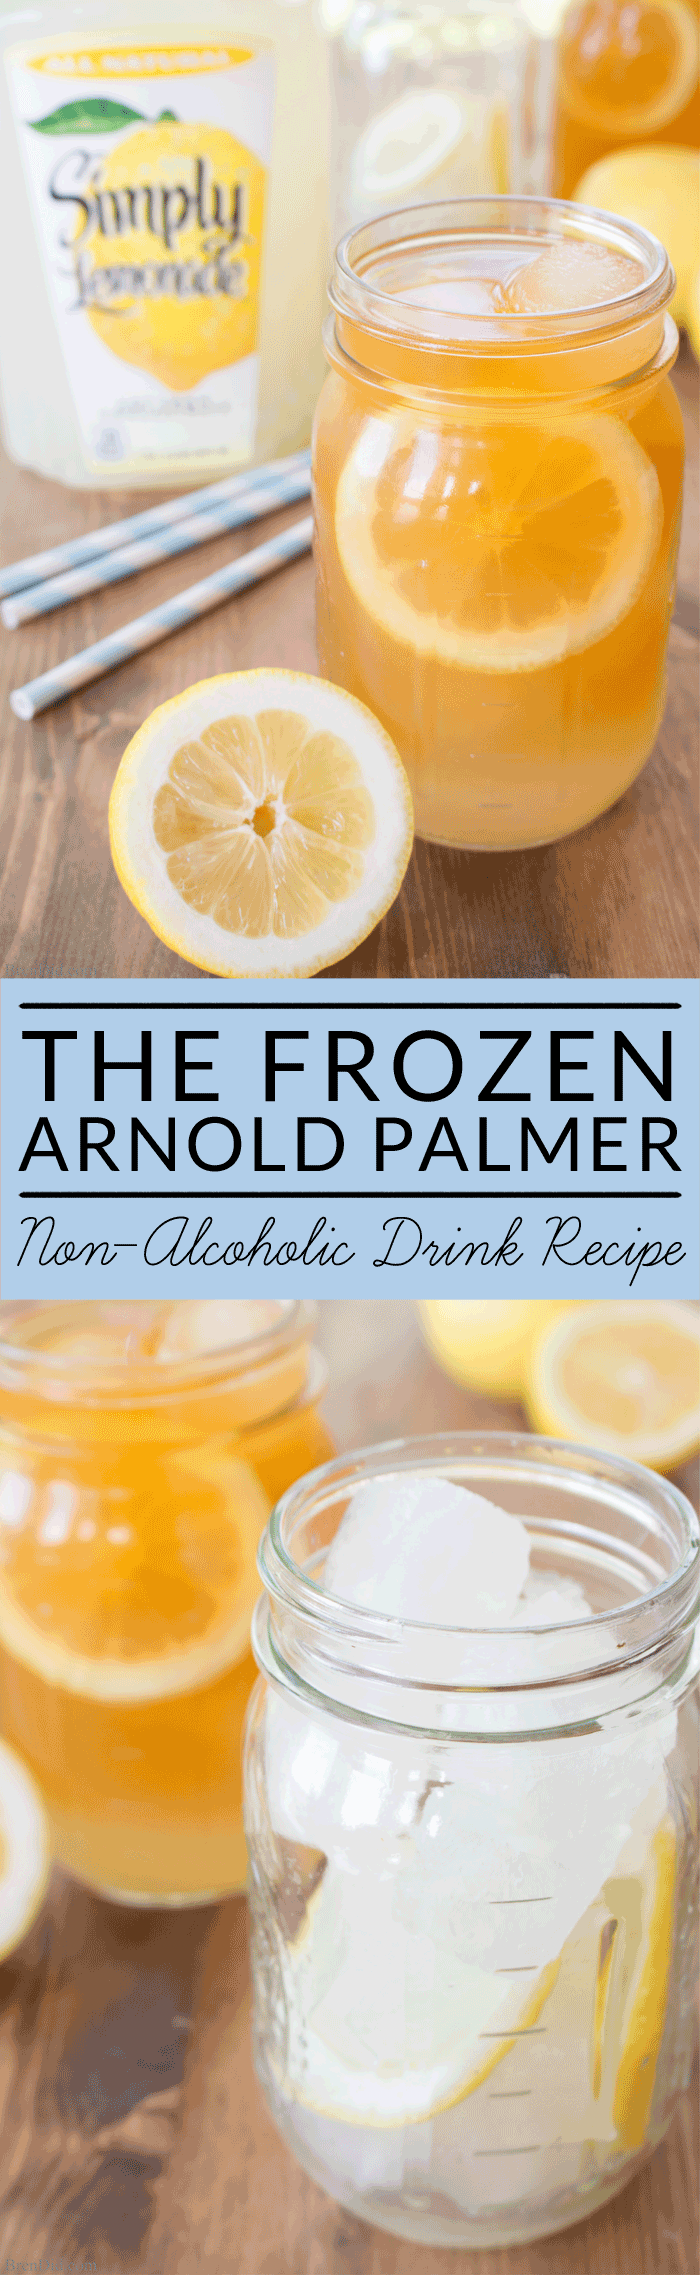 Frozen Arnold Palmer Drink Recipe